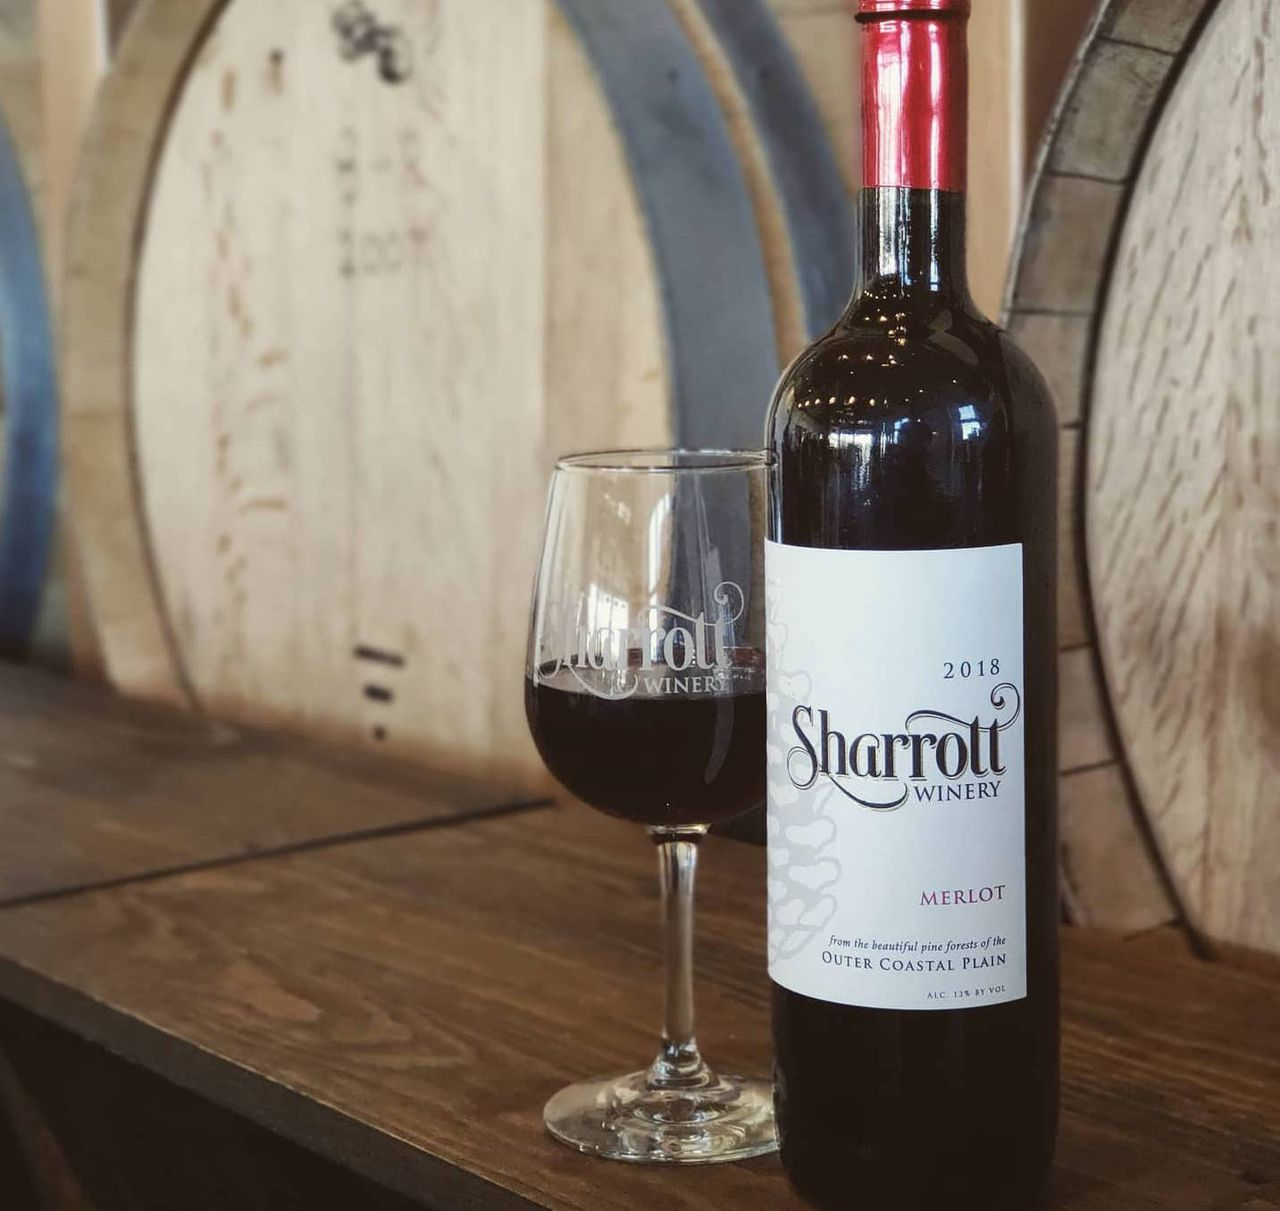 Sharrott, Beneduce, William Heritage Wineries Are N.j. Governor's Cup Top Winners photo